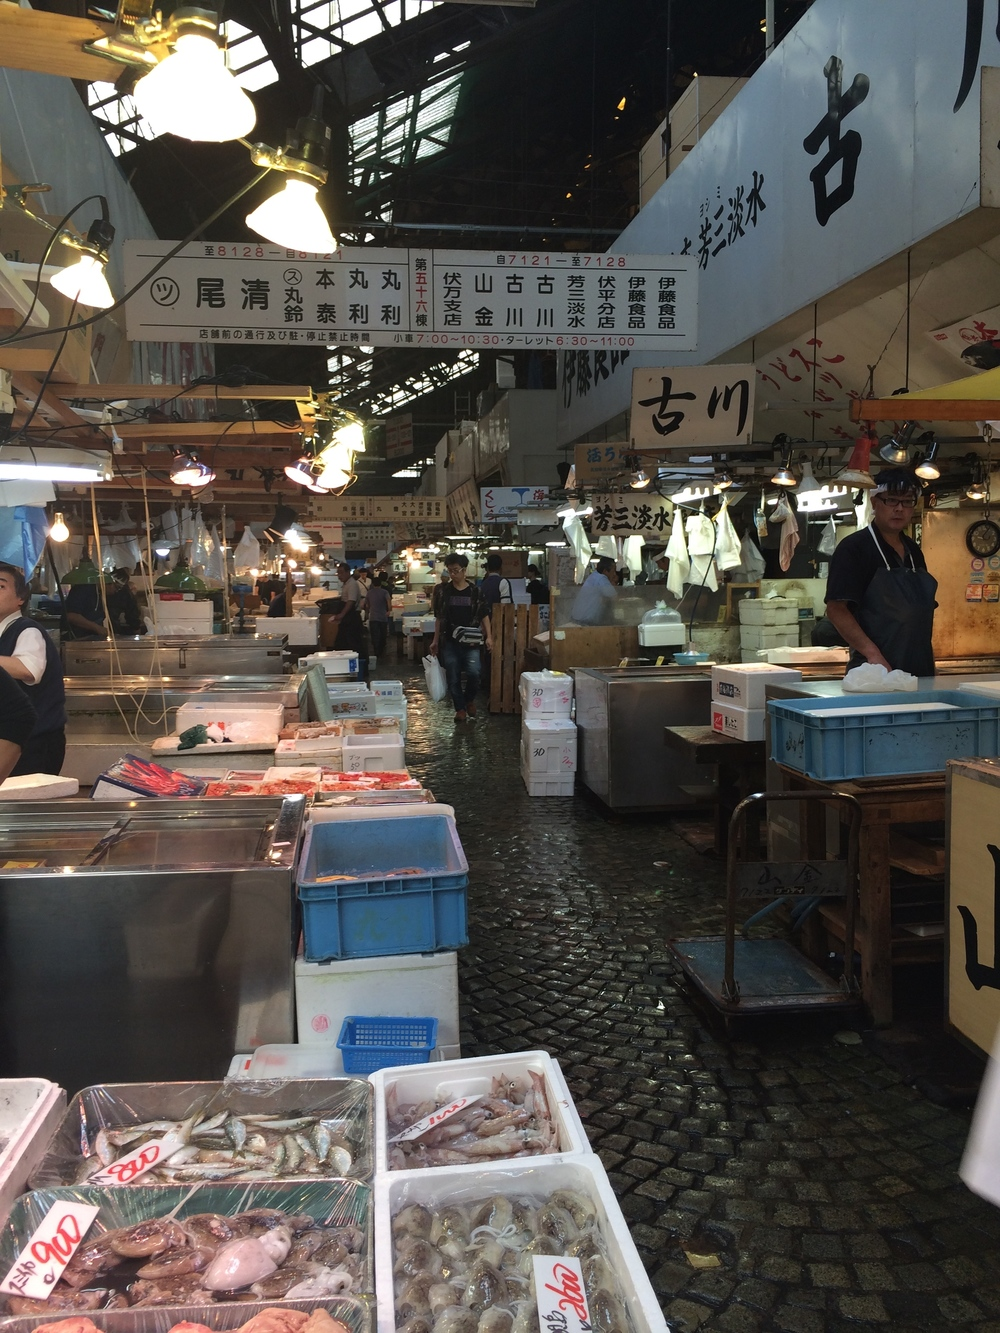 The inner market at Tsujiki